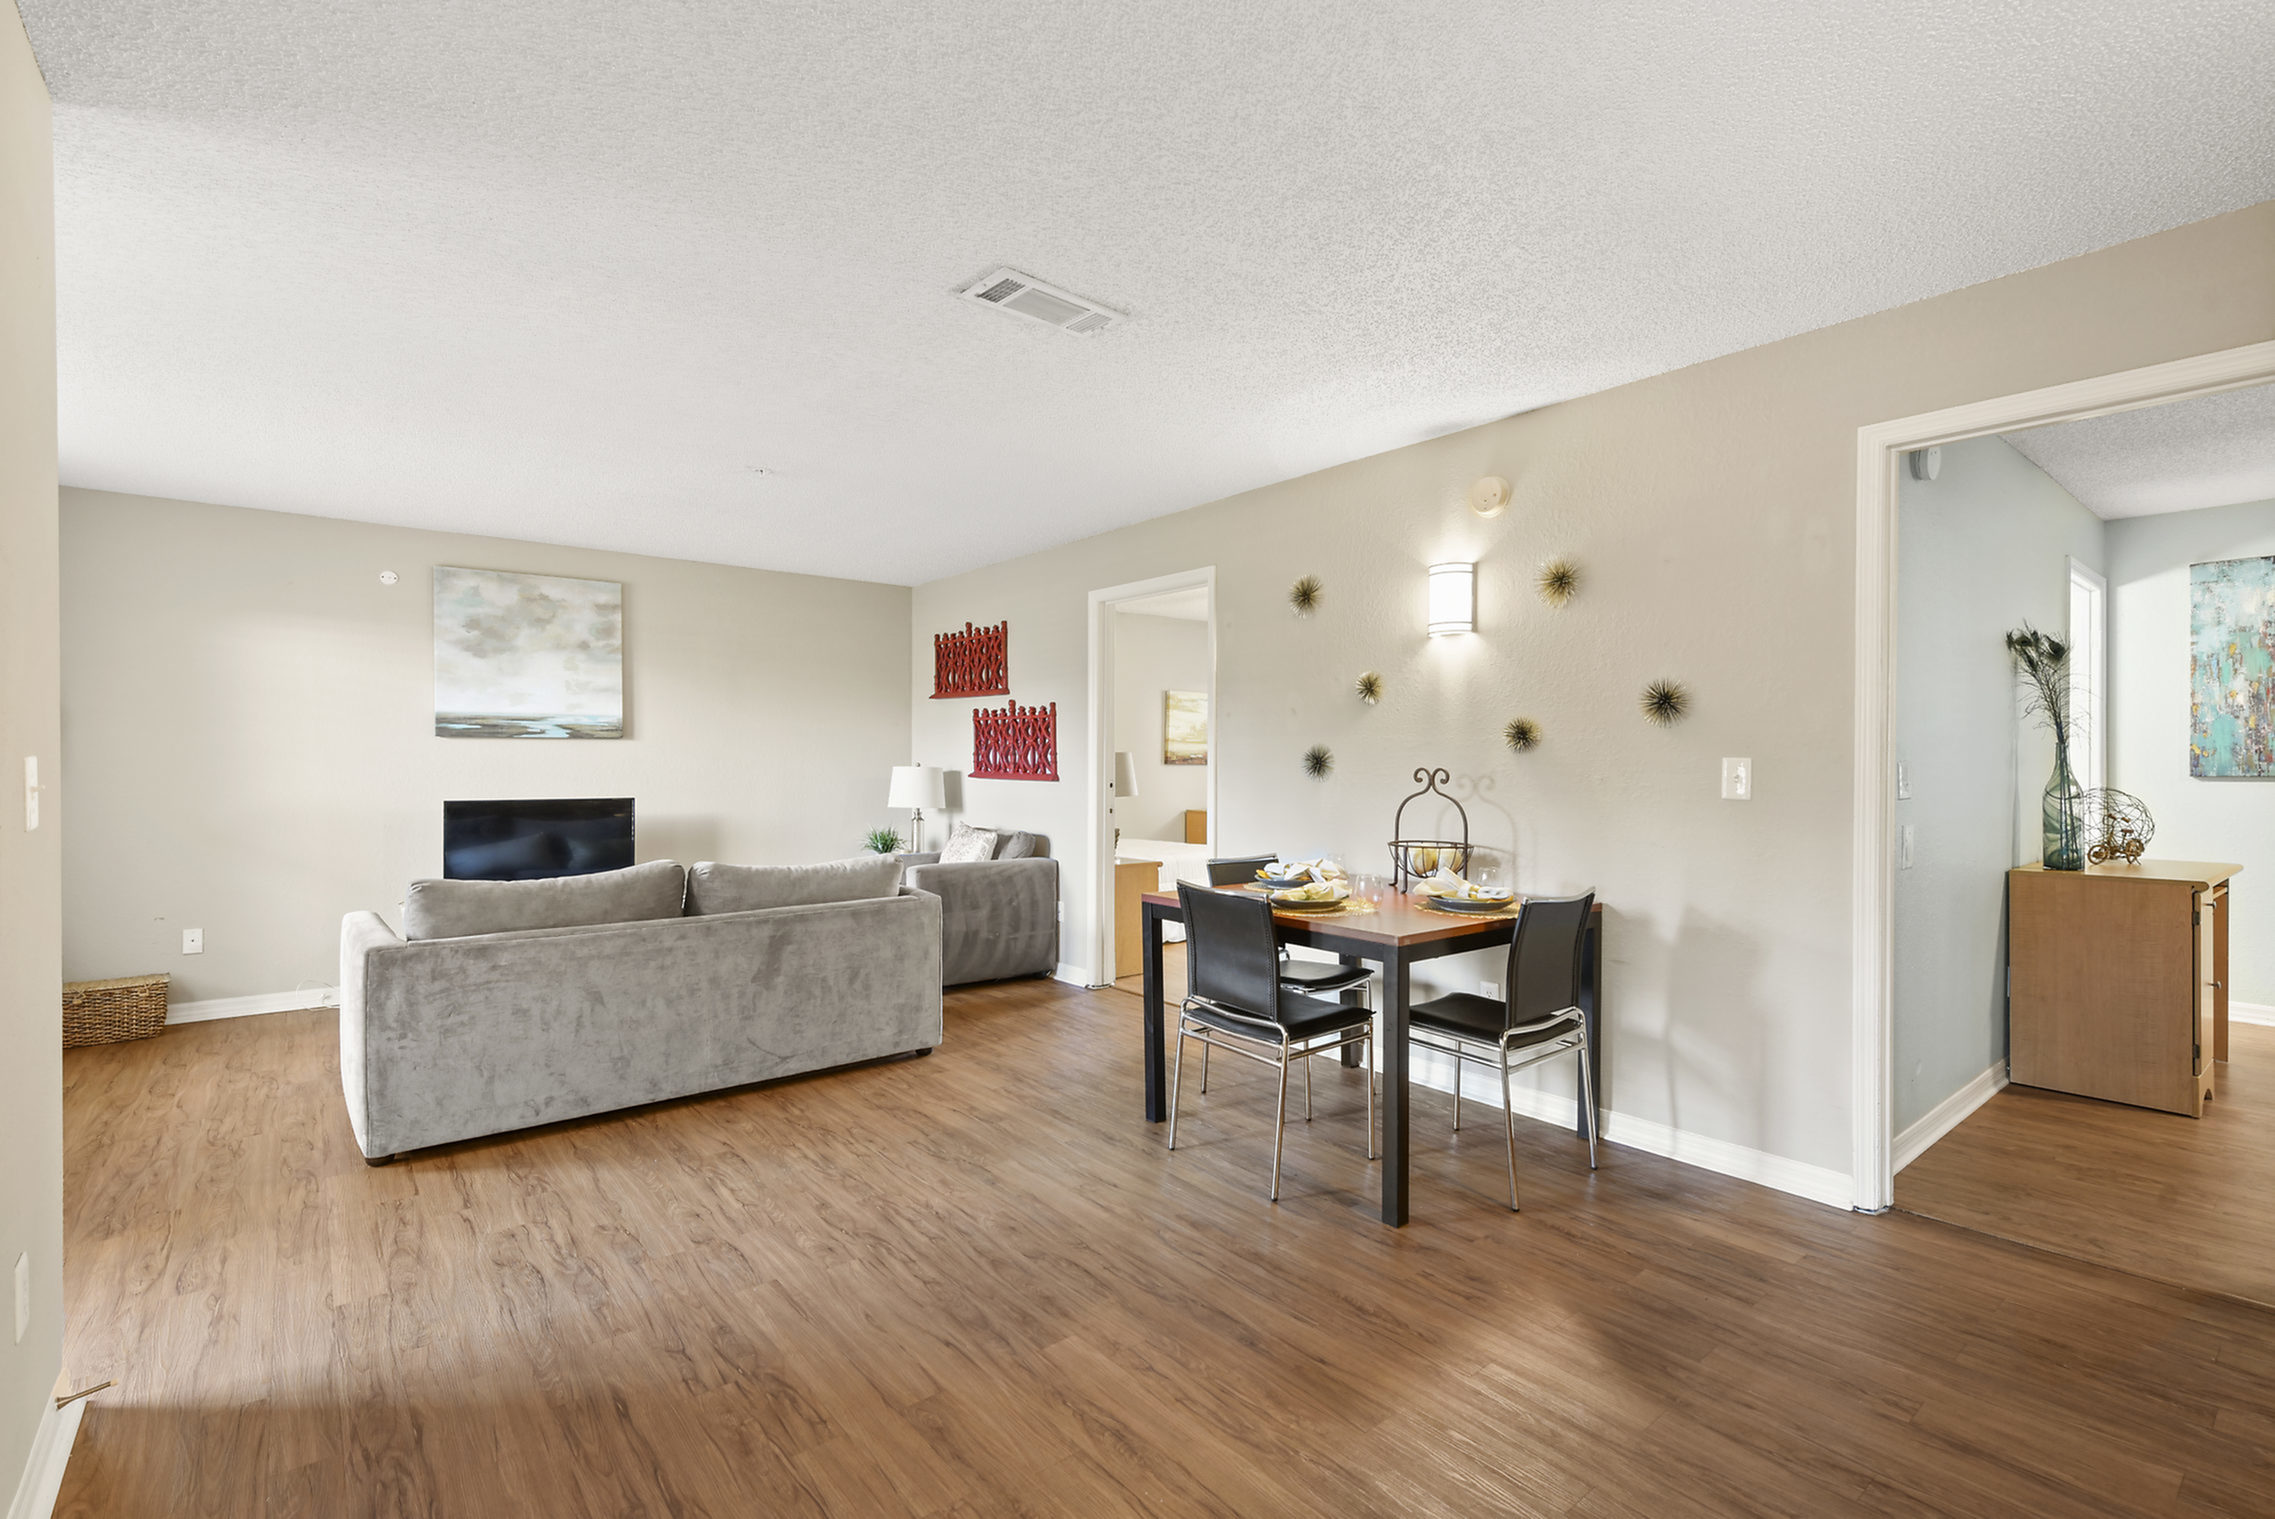 Image of Furnished and Unfurnished Apartments for Kernan Oaks